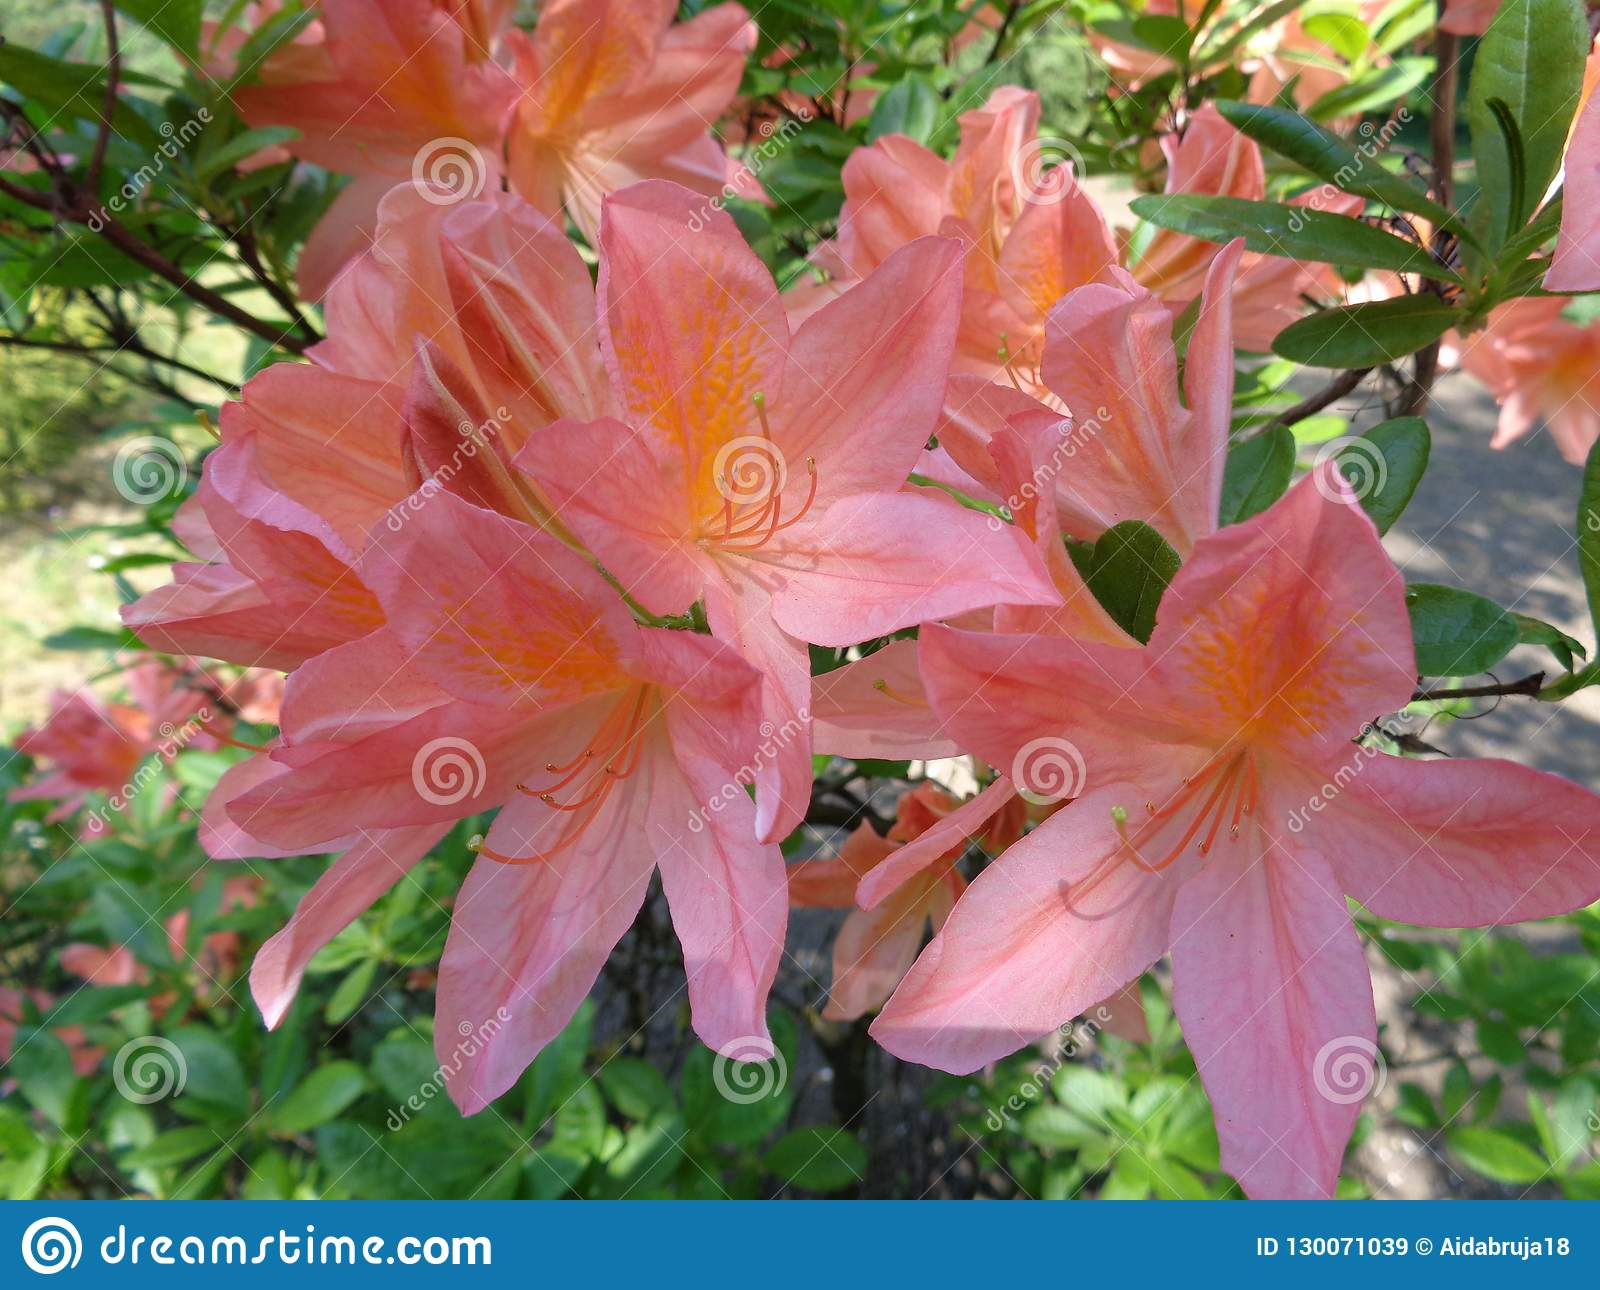 Alstroemeria Peruvian Lily Stock Image Image Of Colorful Composition 130071039